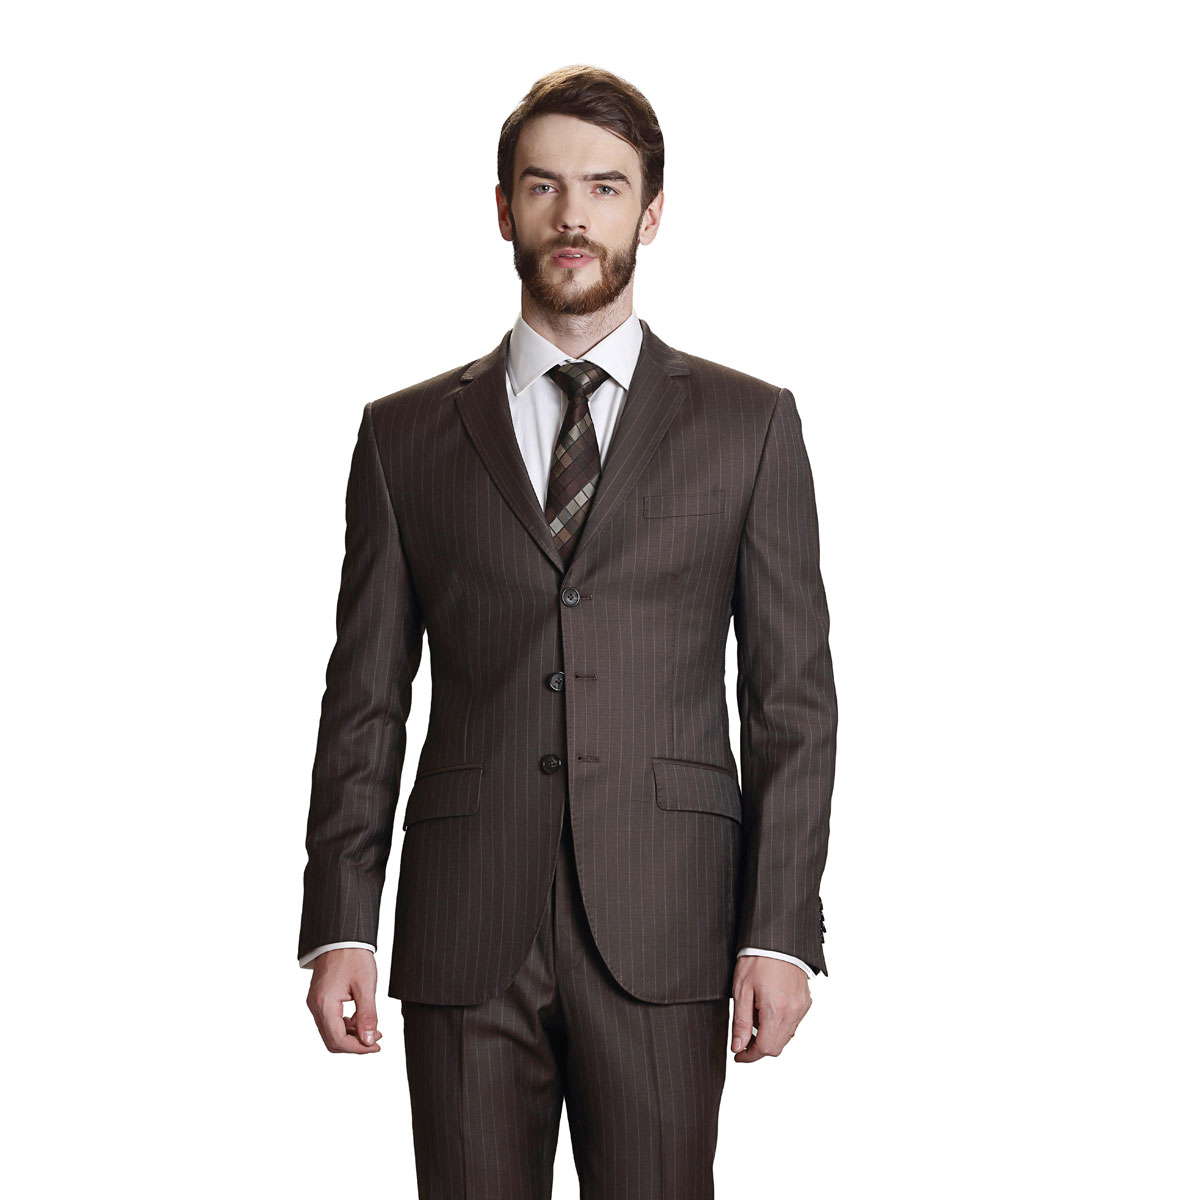 Crowning Glory Brown Stripe Suit - Best Bespoke Suits. Premium